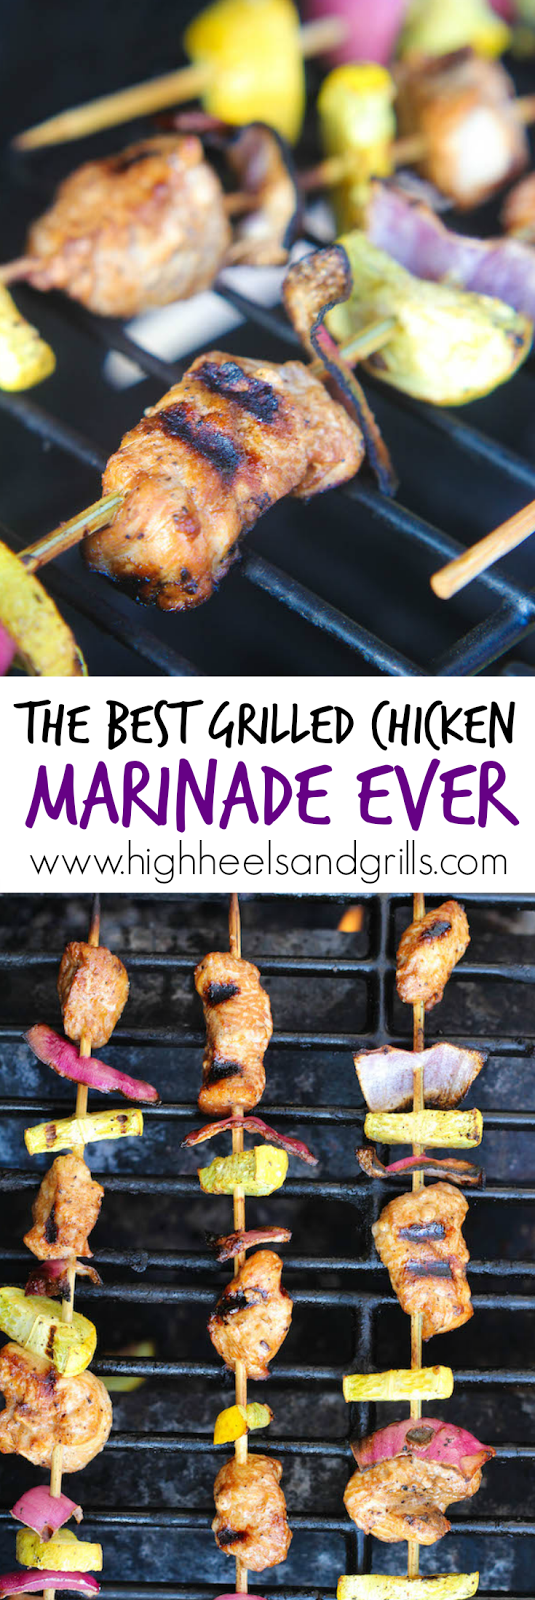 The Best Grilled Chicken Marinade Ever - I haven't found another marinade that can top this. Inspired from Sanpete County's Barbecue Turkey.